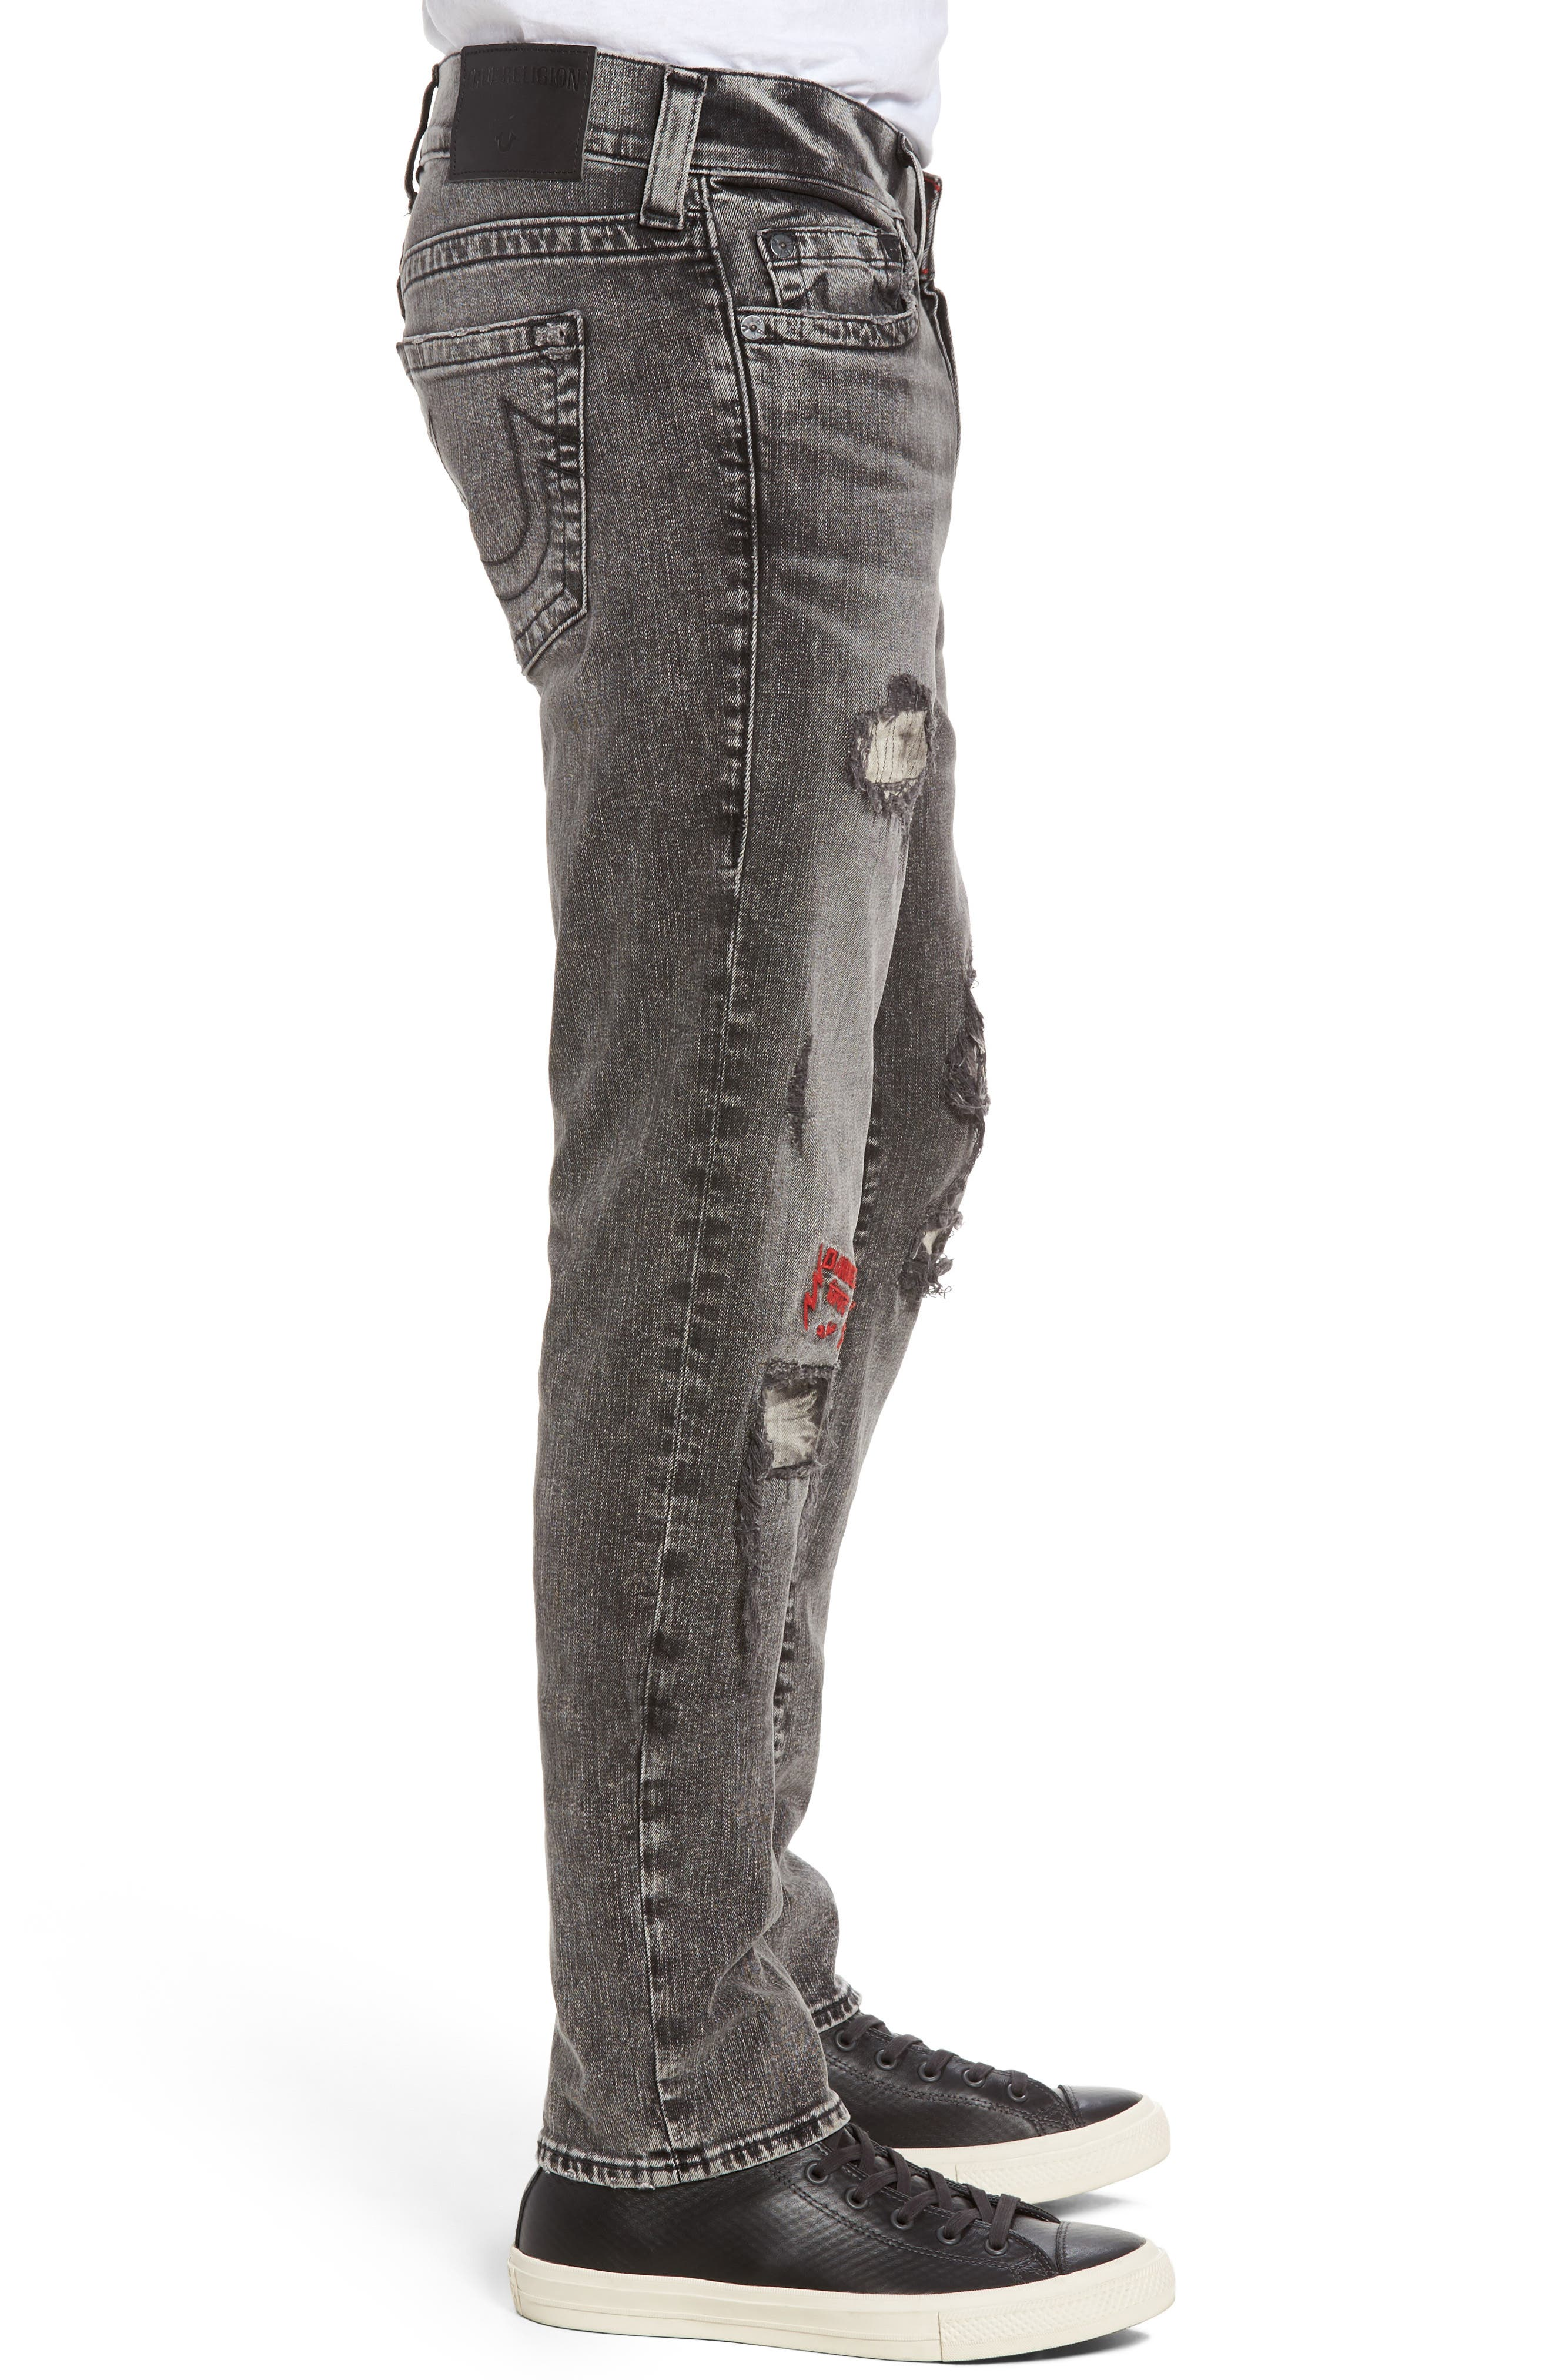 Rocco Skinny Fit Jeans,                             Alternate thumbnail 3, color,                             408